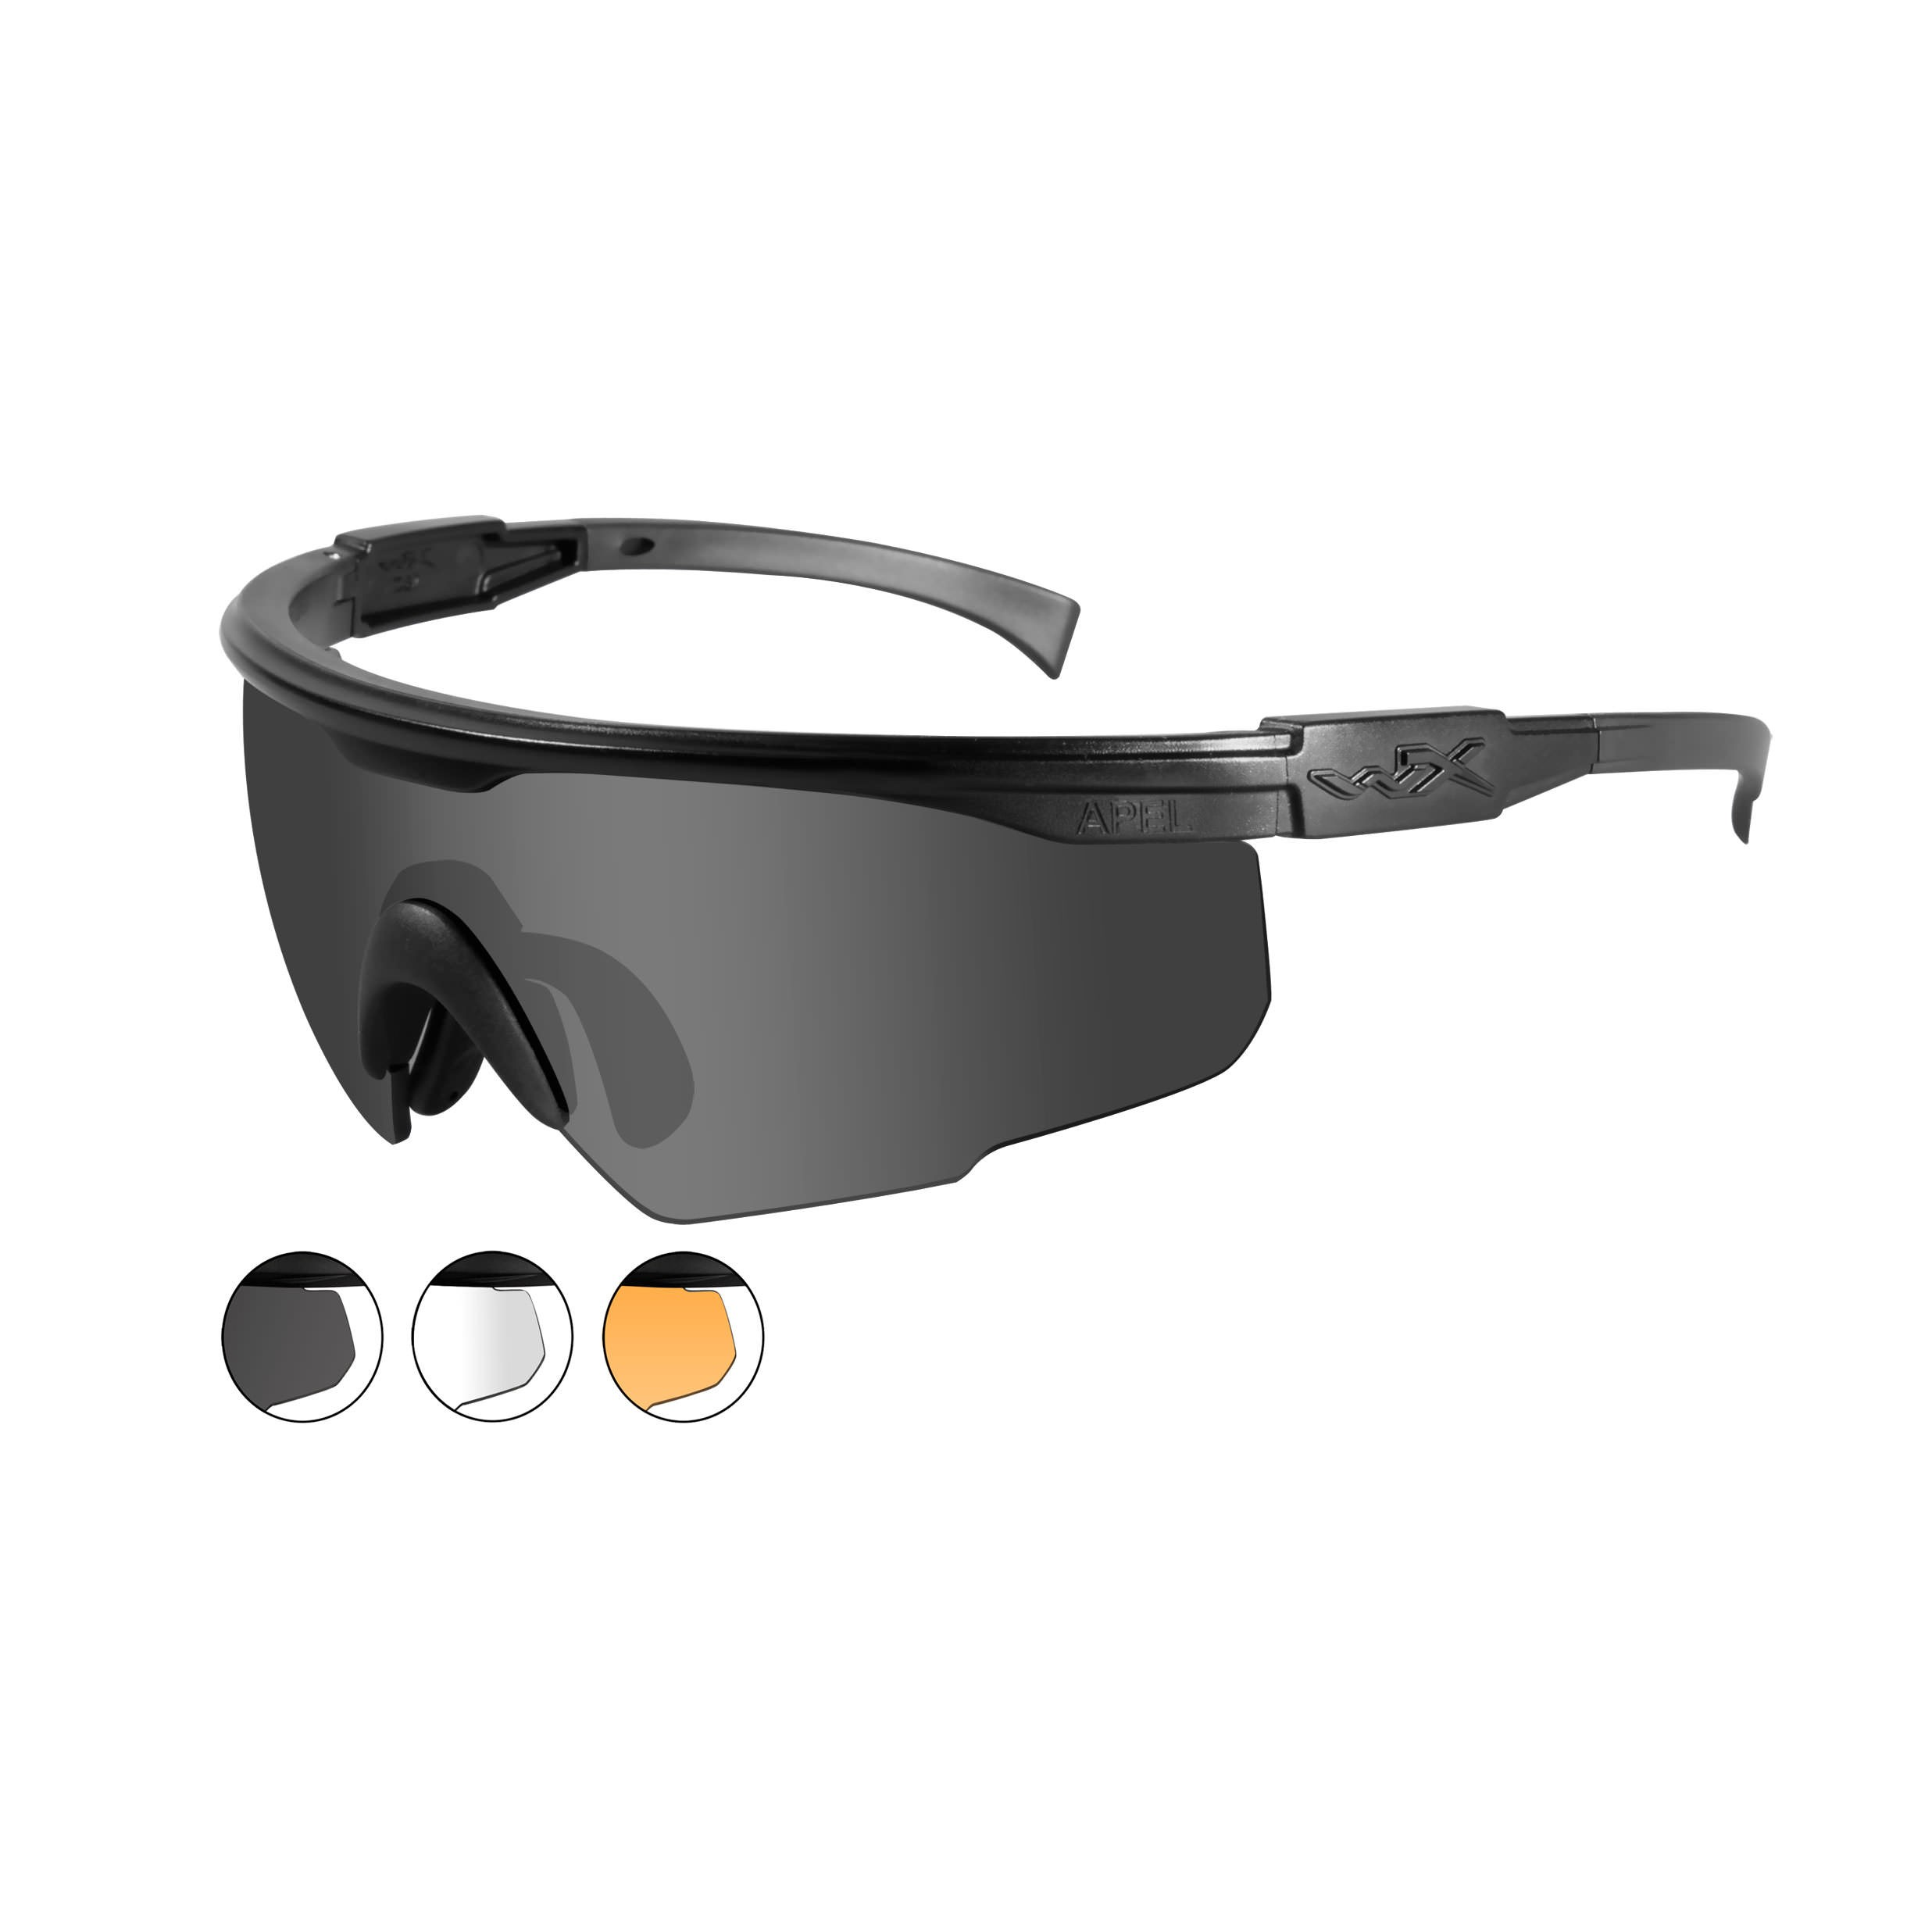 Wiley X PT-1 Interchangeable Sunglasses - 3 Lens System - Clear, Light Rust Lens & Smoke Green